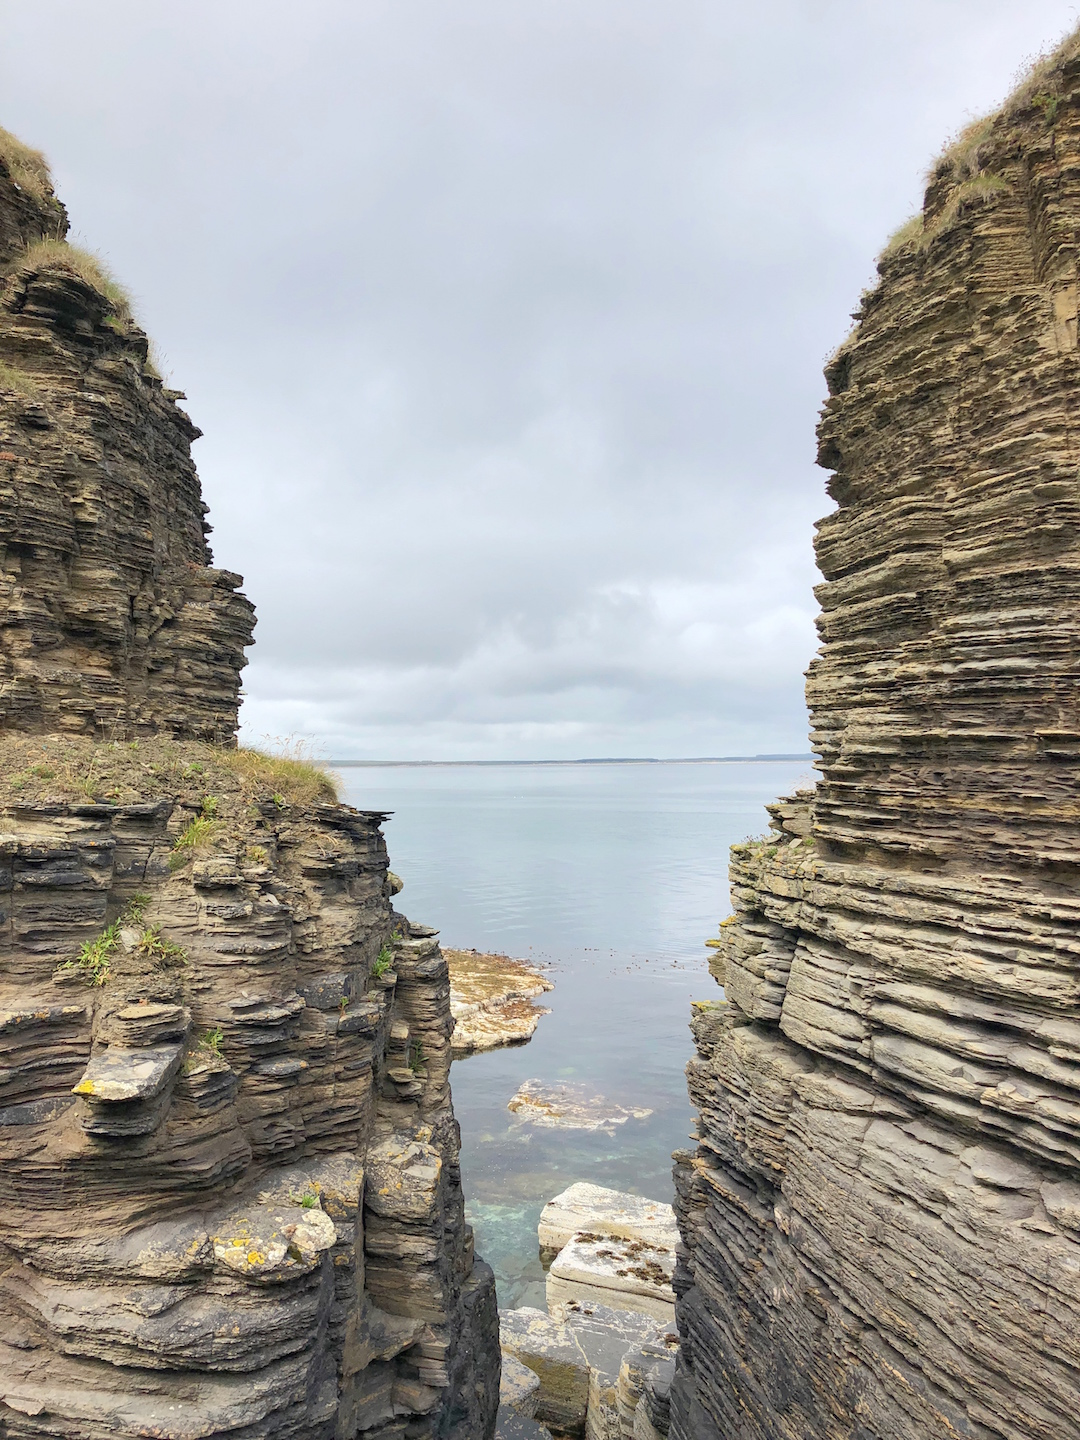 Cliffs in the Scottish Highlands